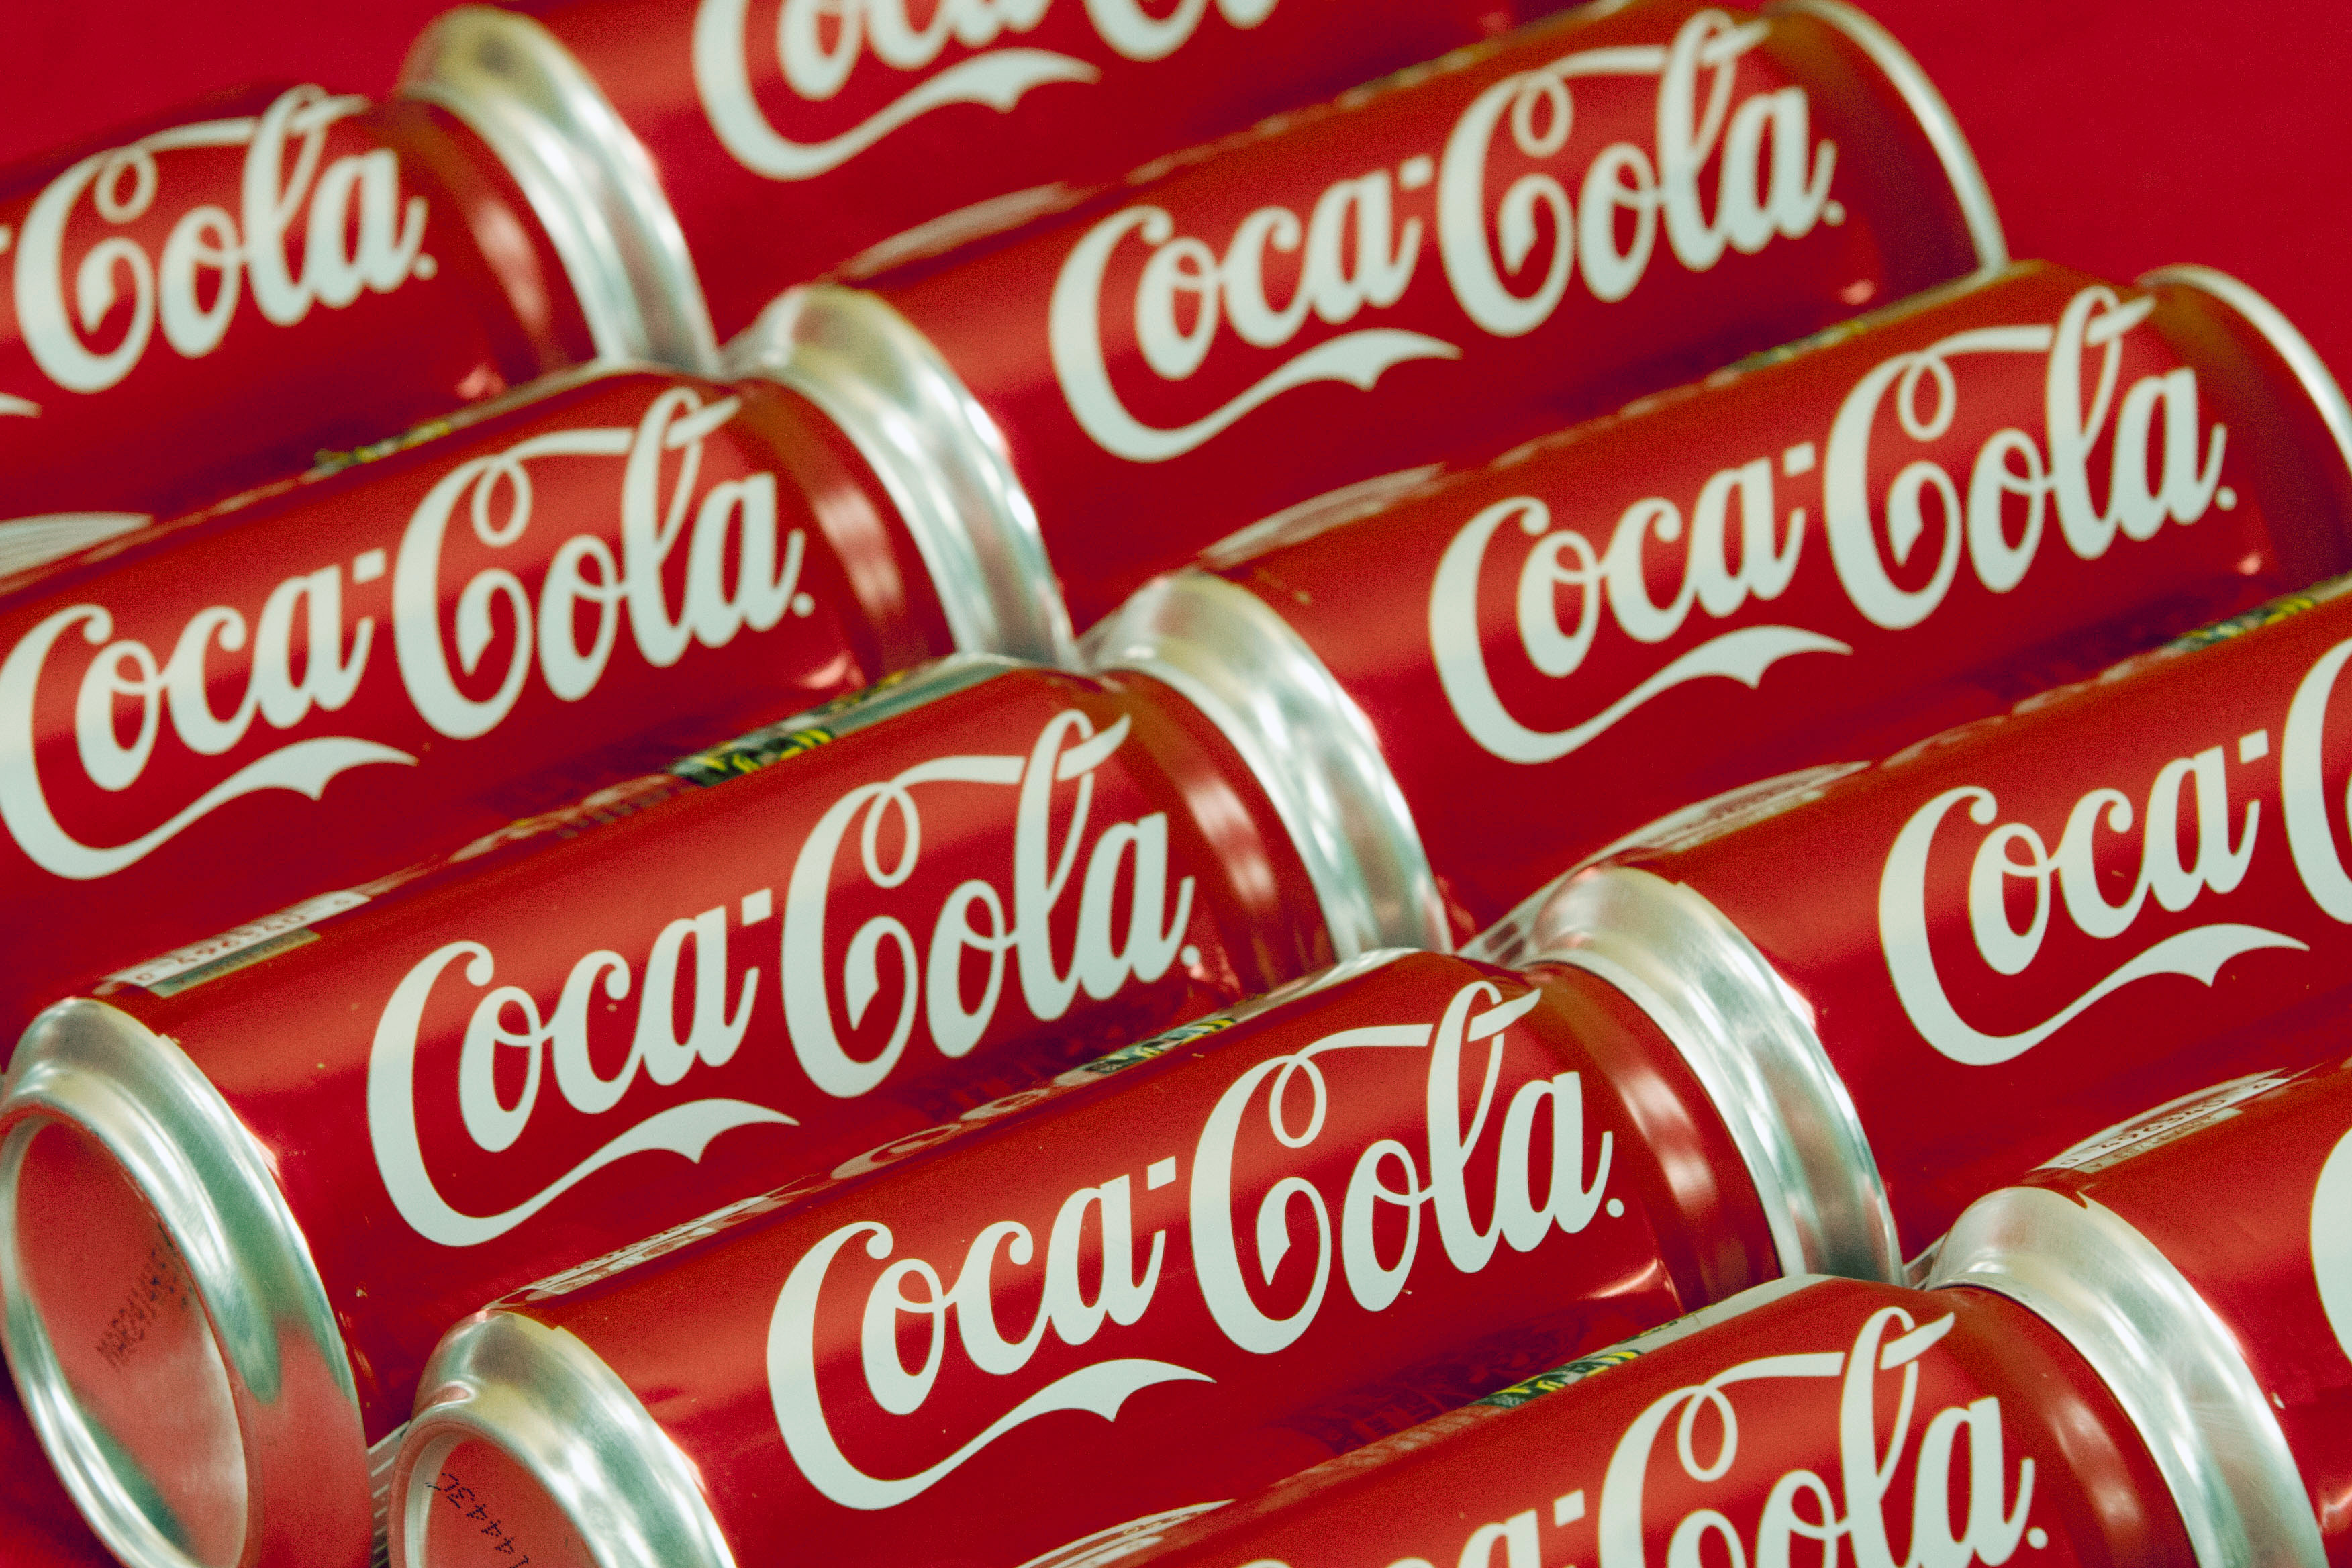 Coca-Cola ad takes on health-critic assertions - The Blade